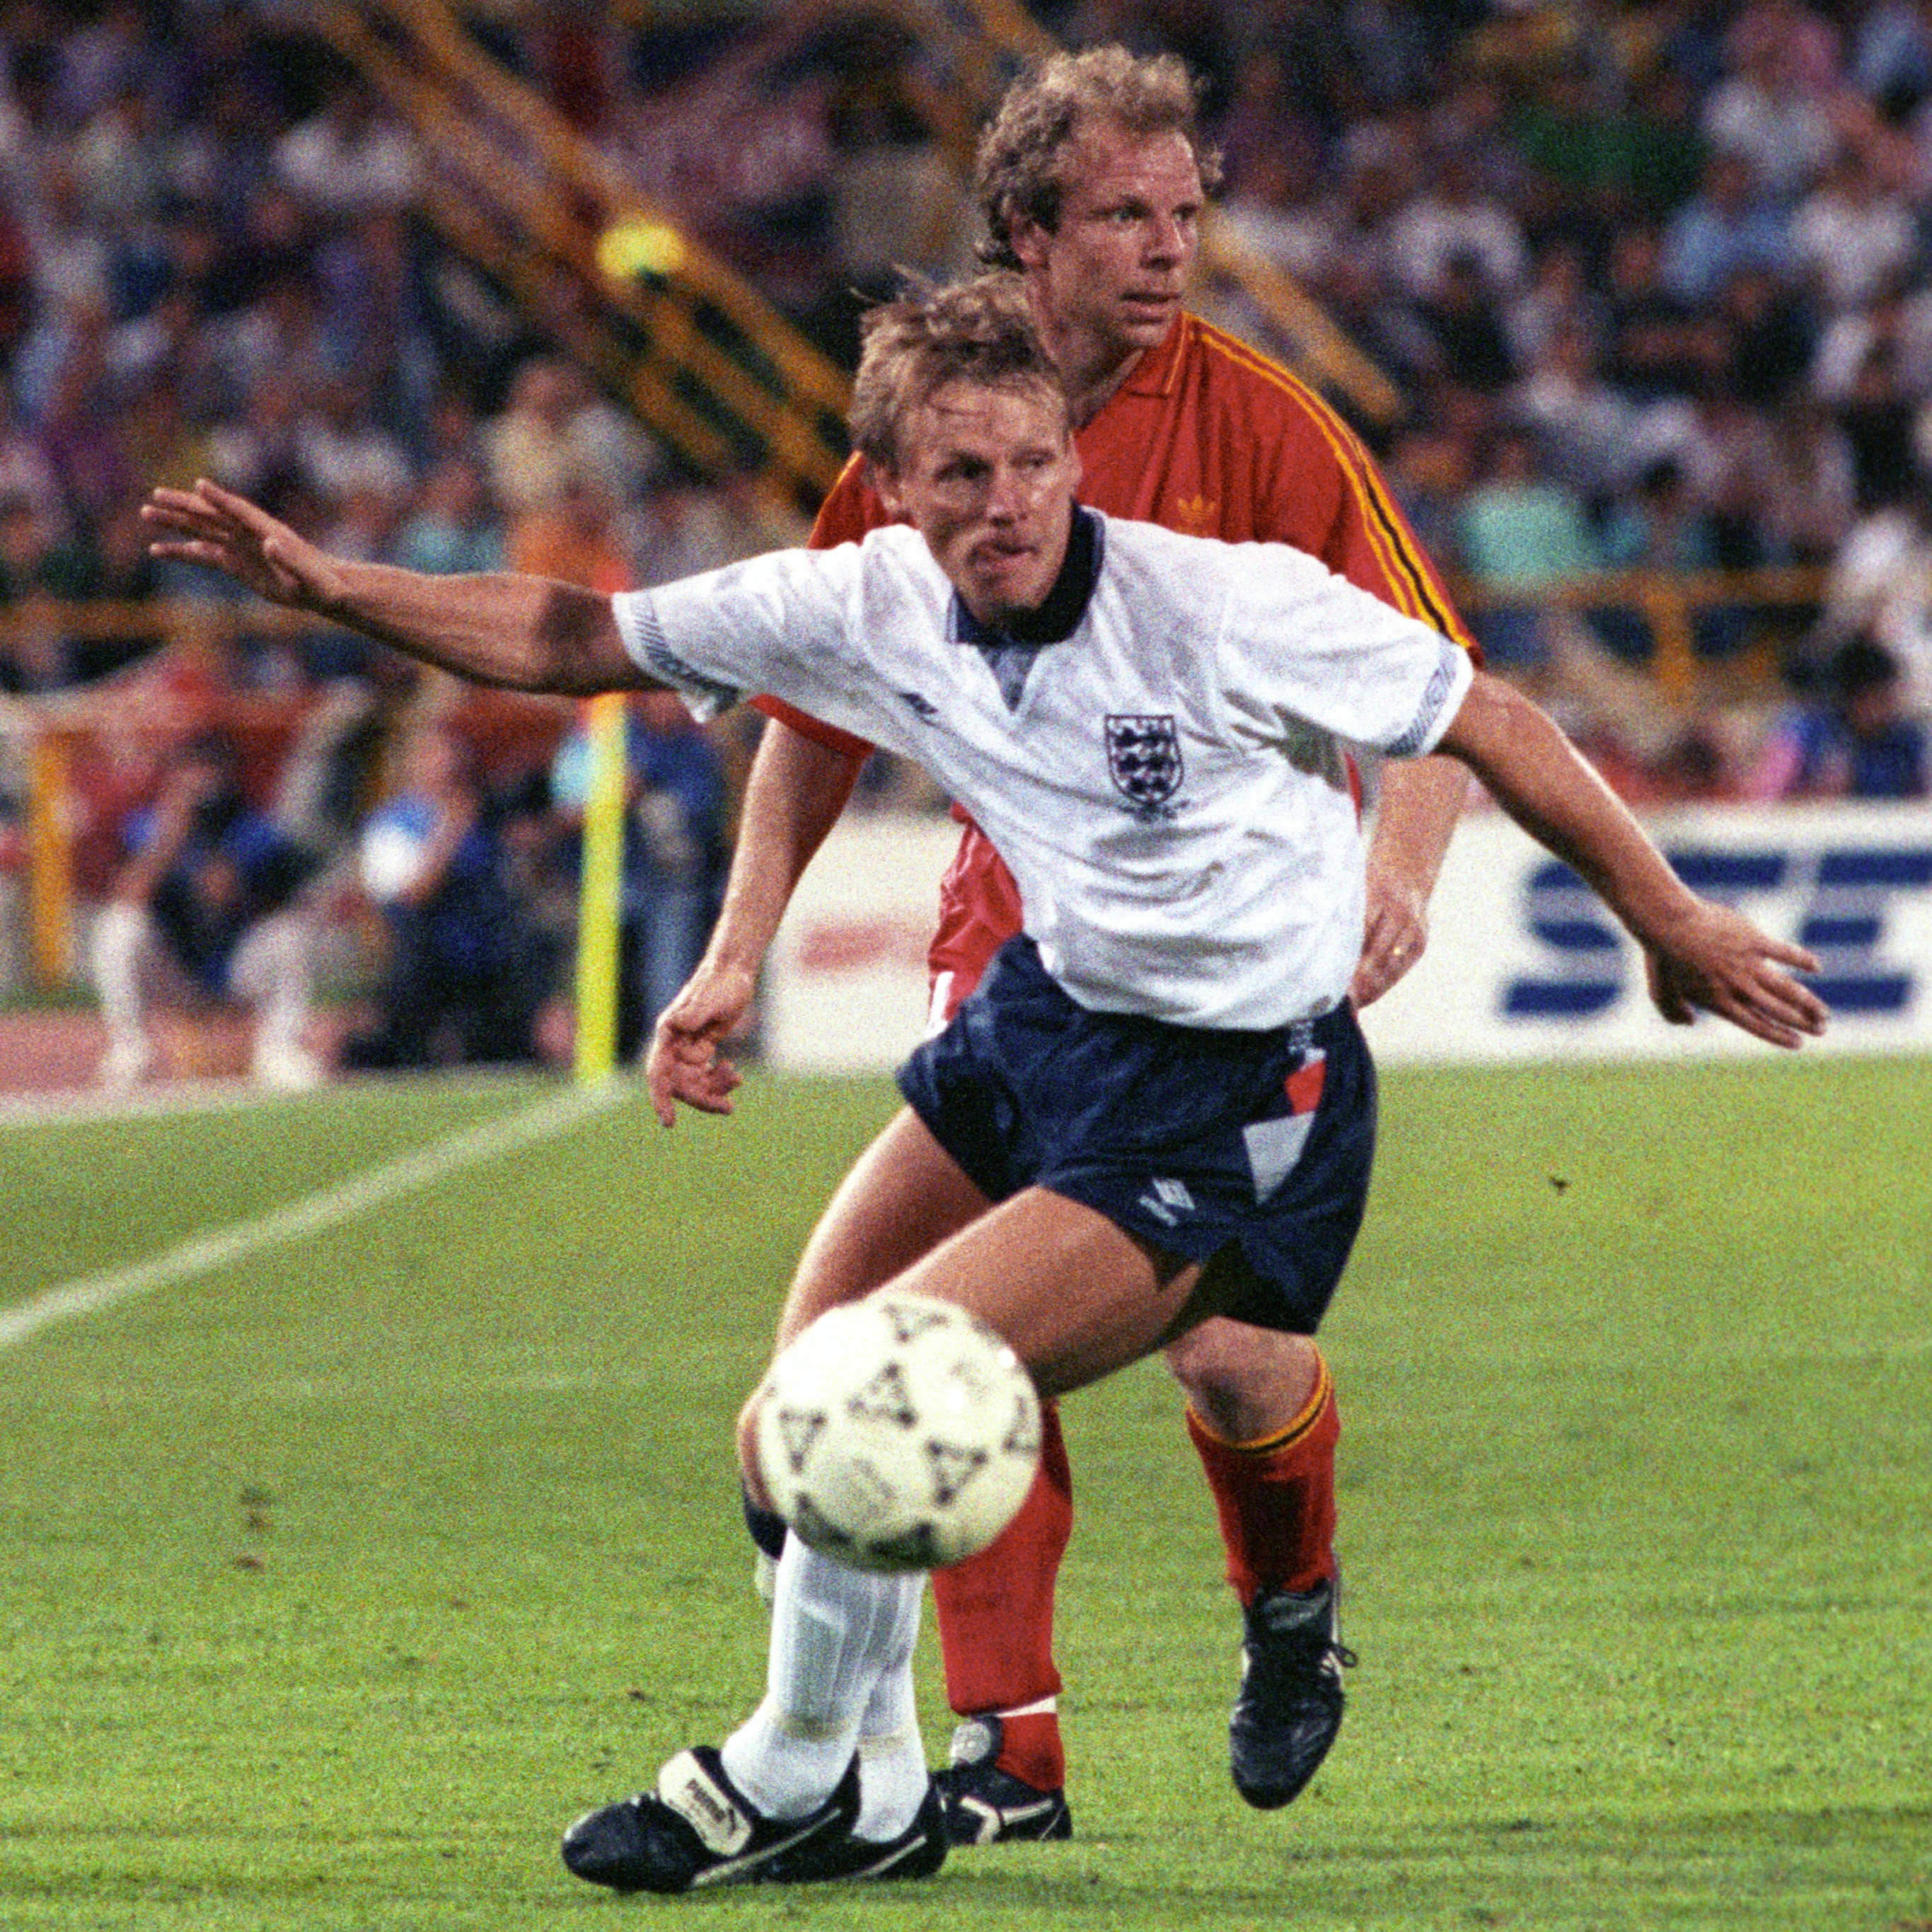 Stuart Pearce playing for England against Belgium